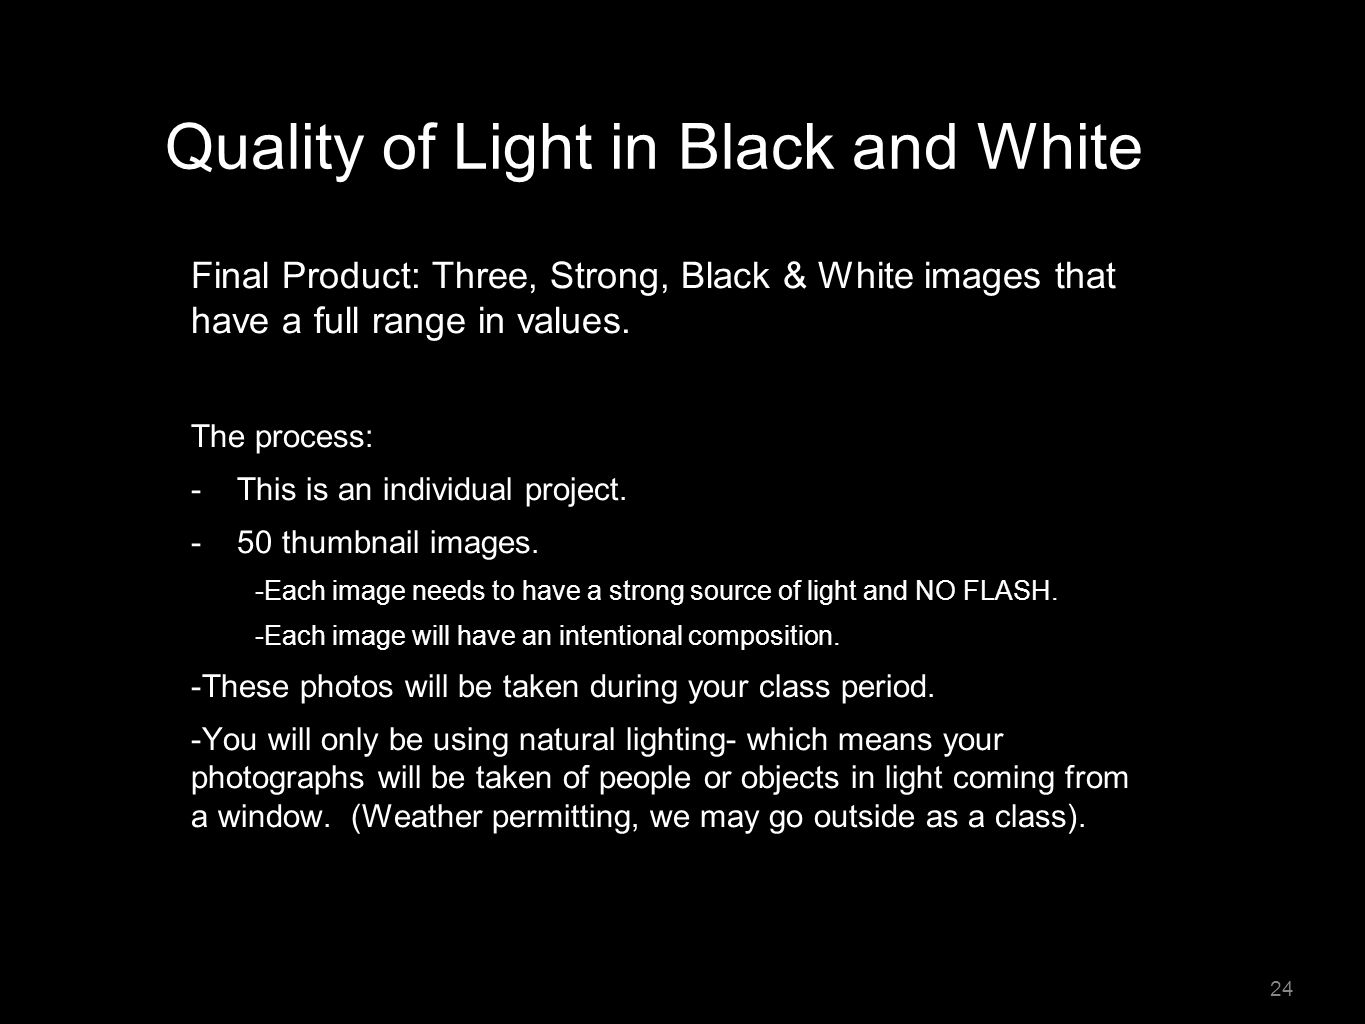 Quality of Light in Black and White Final Product: Three, Strong, Black & White images that have a full range in values. The process: - This is an ind